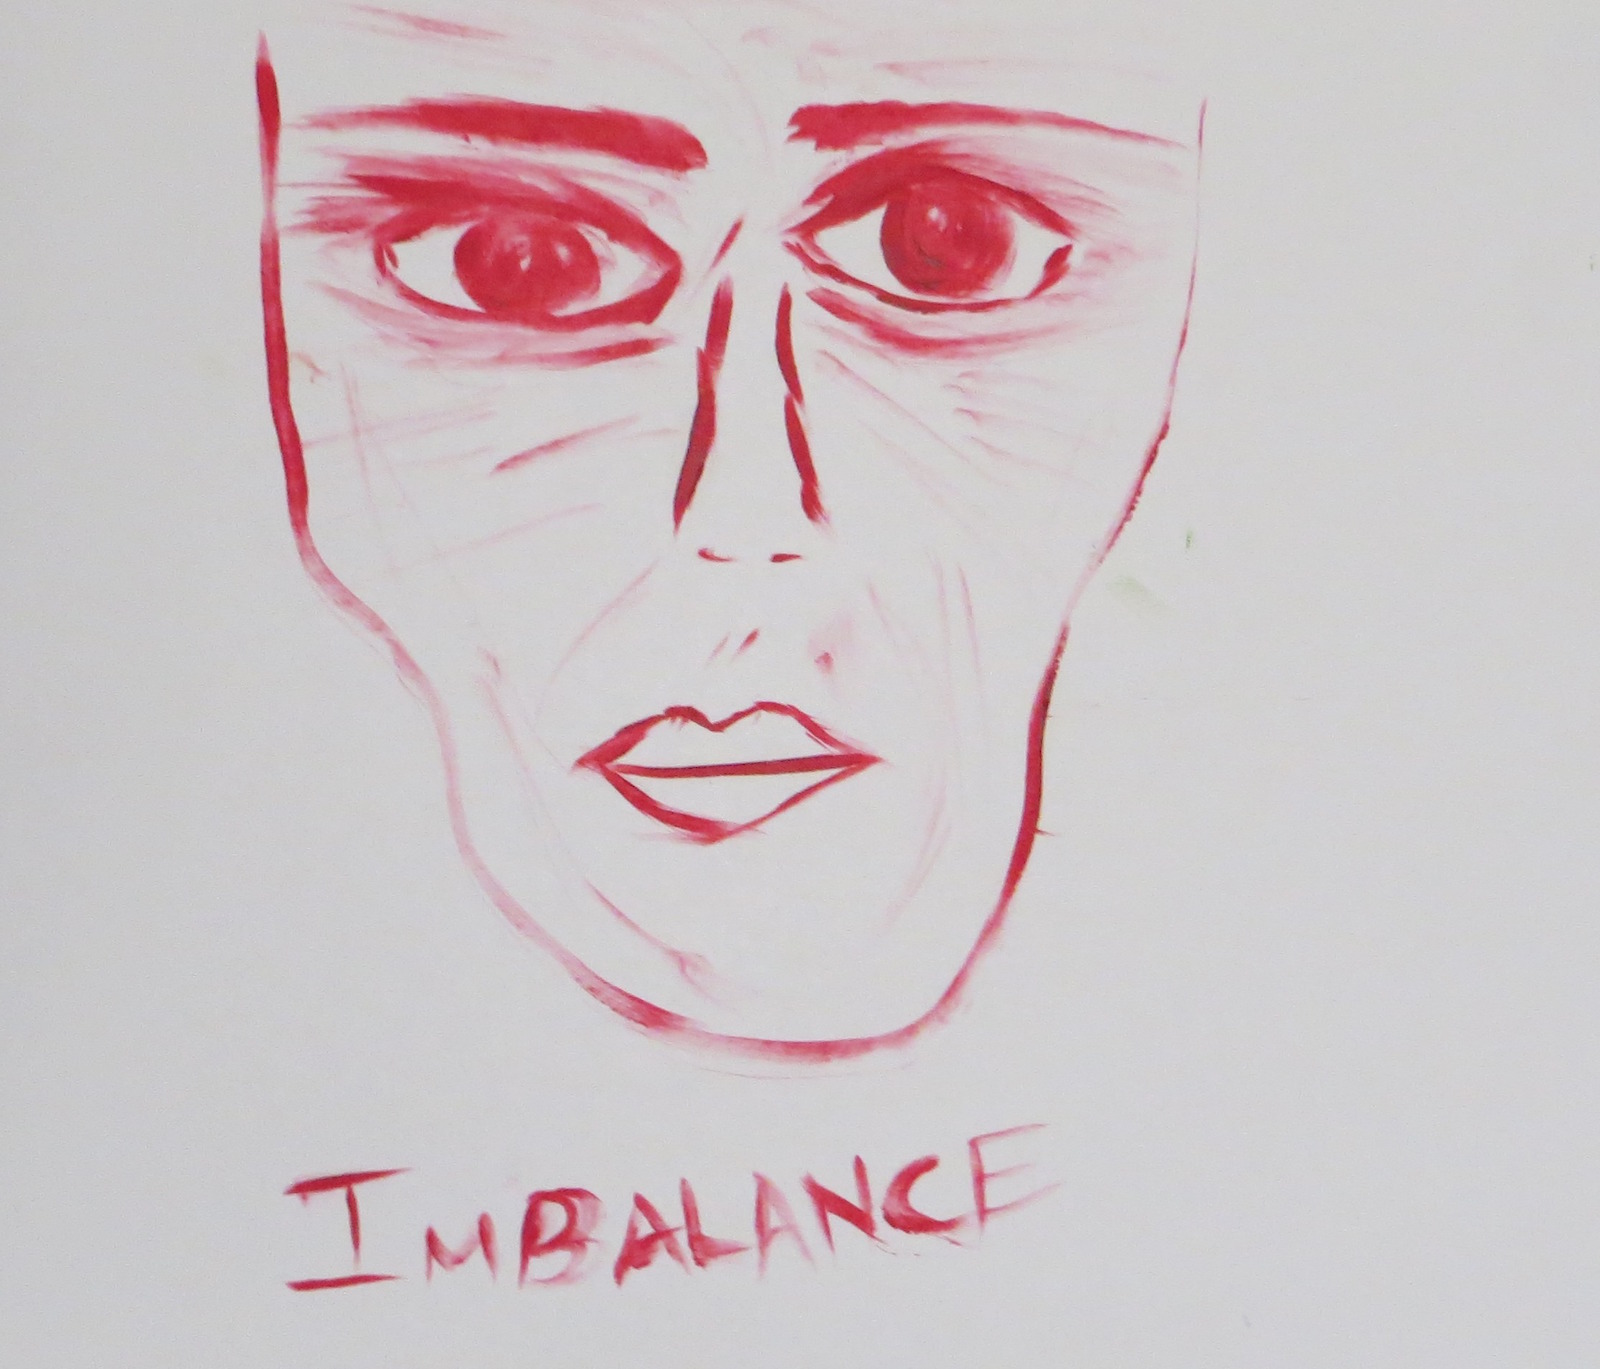 Illustration of person's face with the word imbalance underneath it